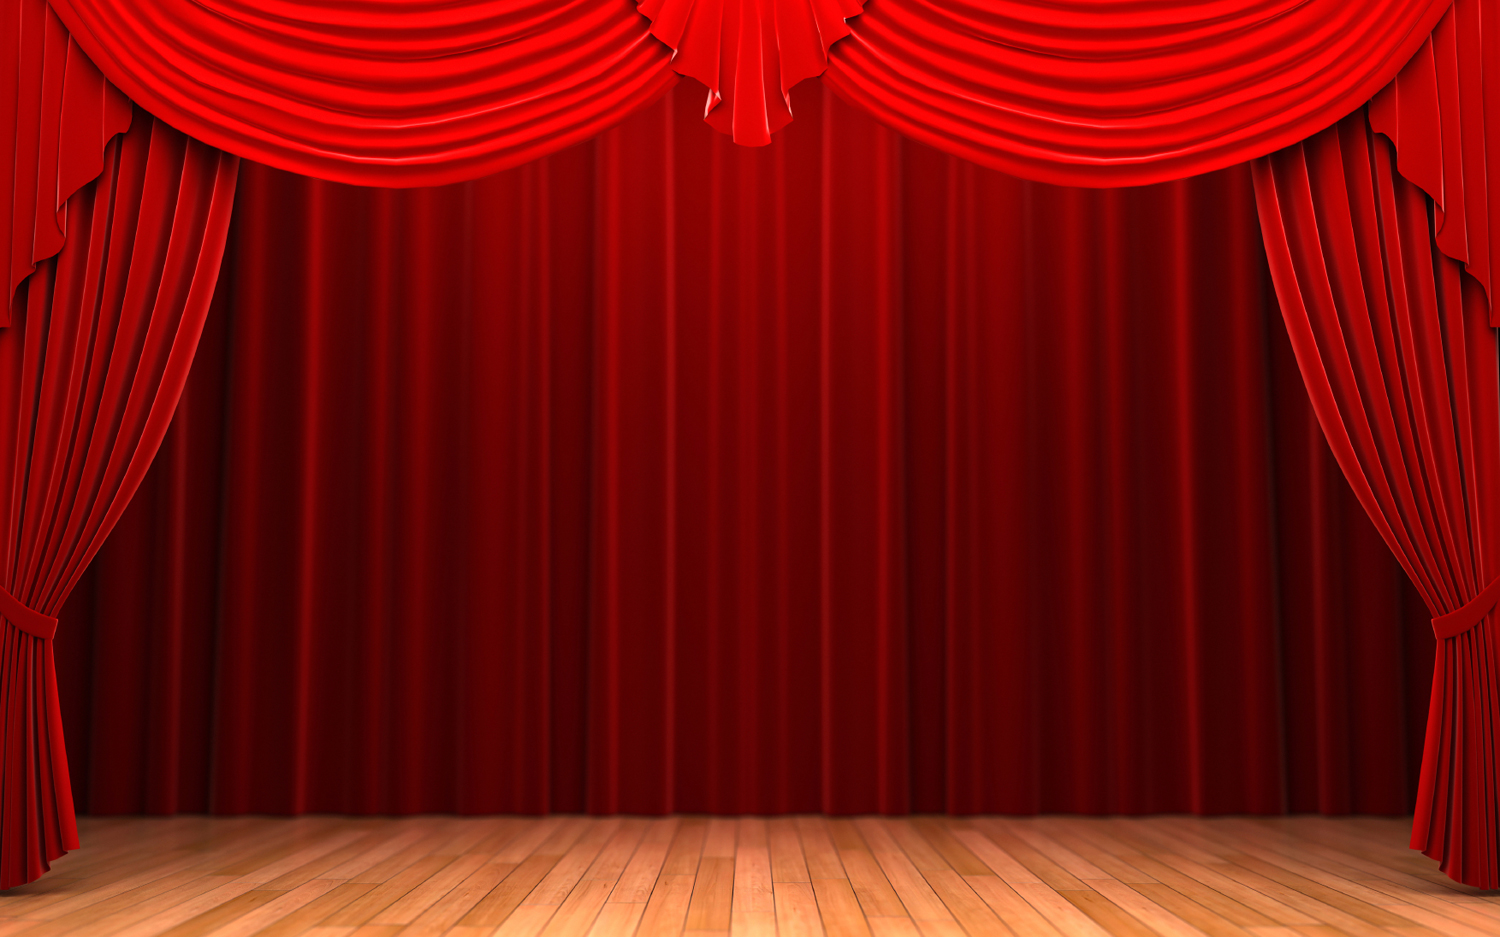 Red stage curtains open - Red Stage Curtains Open Reanimators